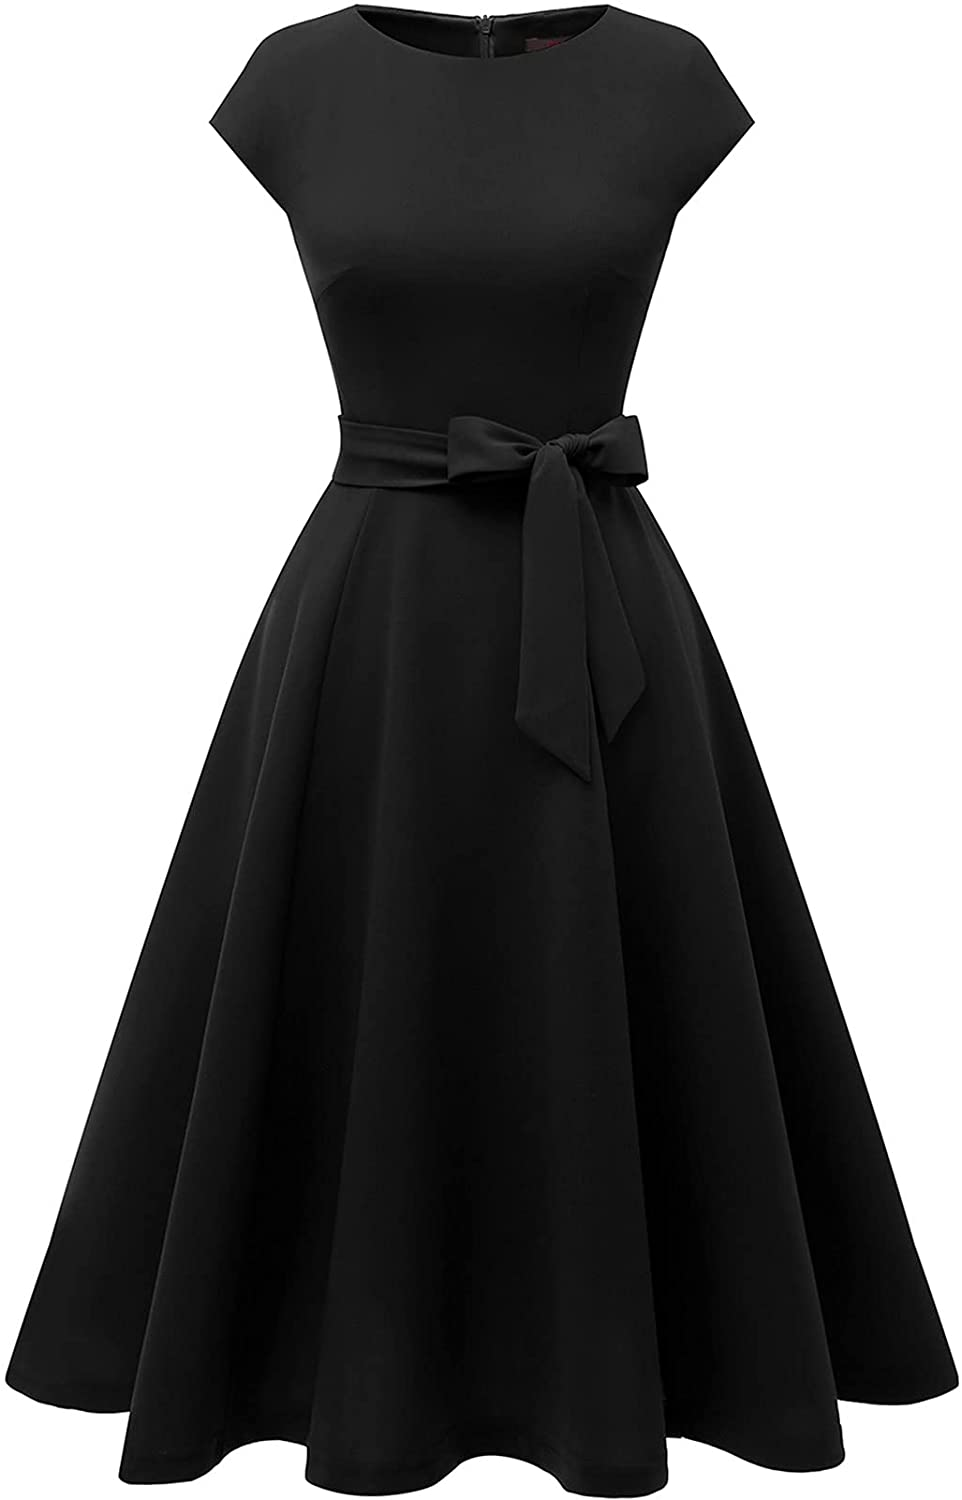 Women Casual Dresses Swing Tea Limited time trial Max 69% OFF price Mid Dress Cocktail A-Line Vintage